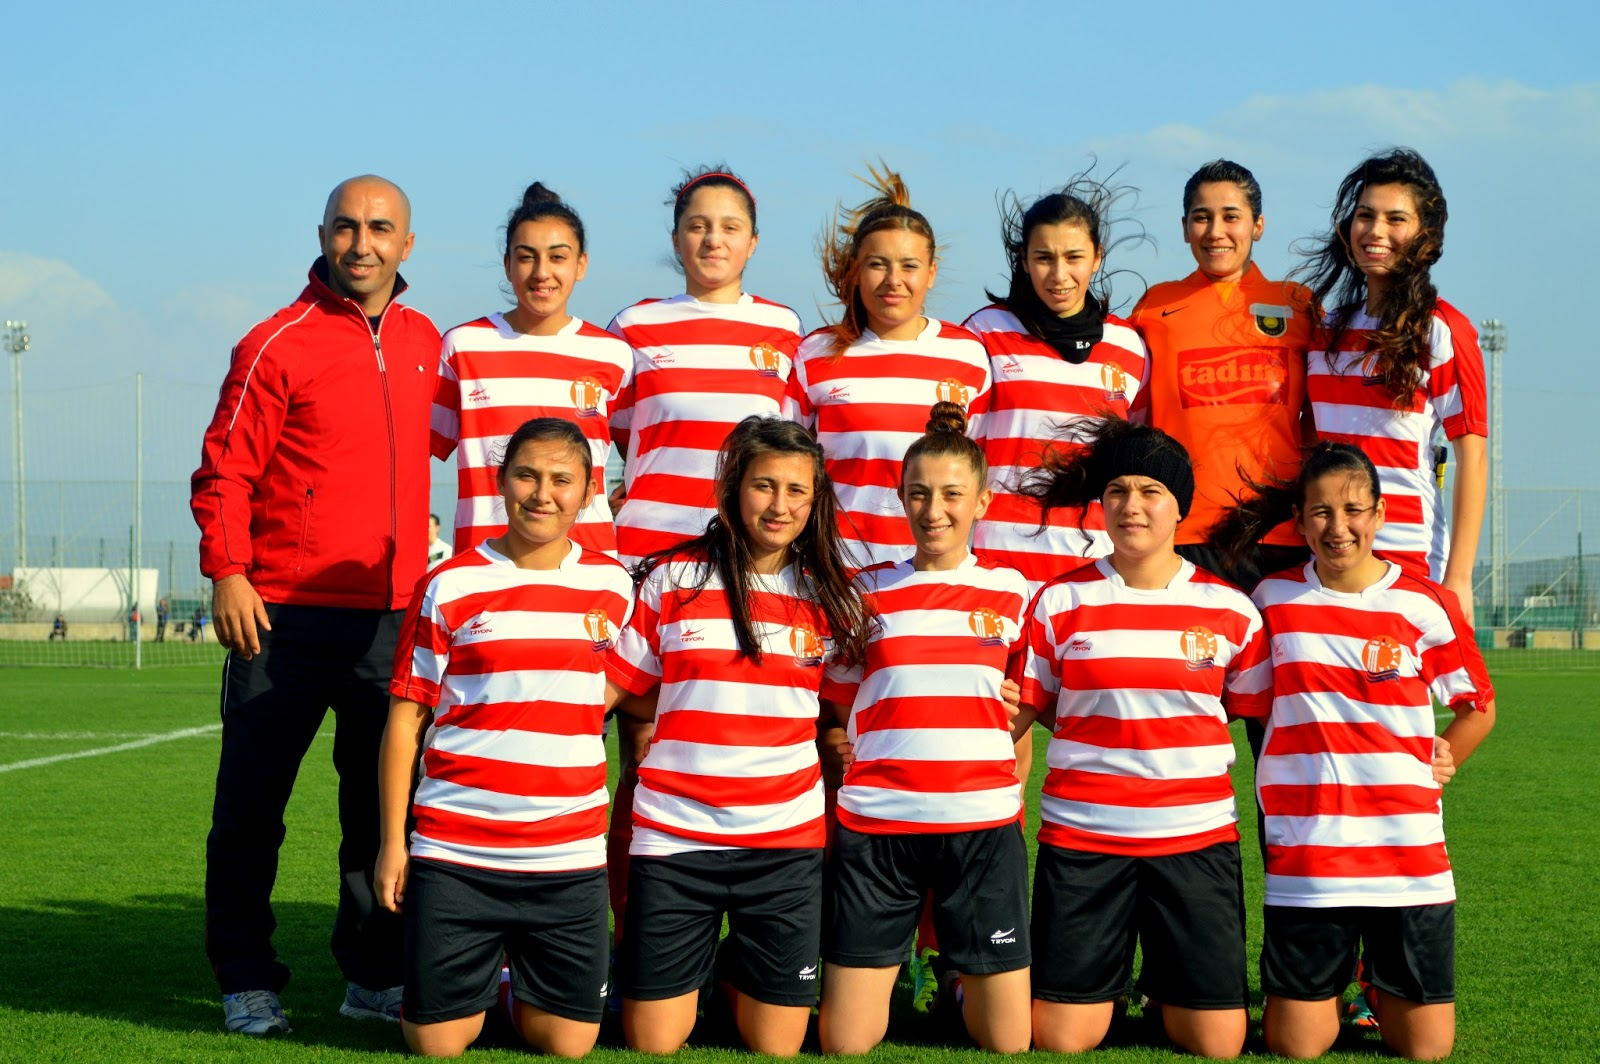 Antalya's Pride: 1207 AntalyaSpor Women's Football Team